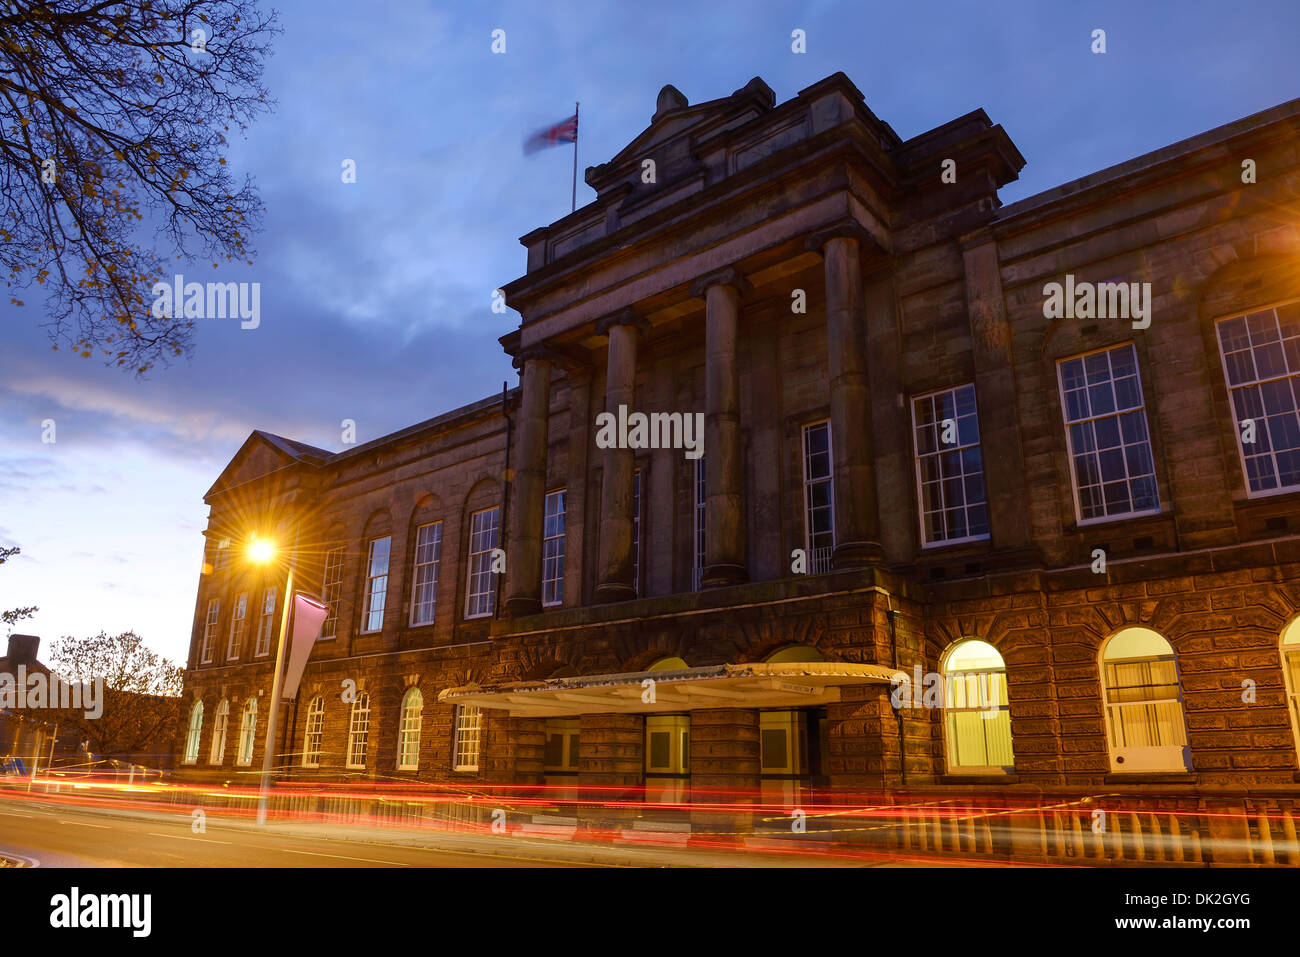 The Town Hall building in Stoke on Trent - Stock Image